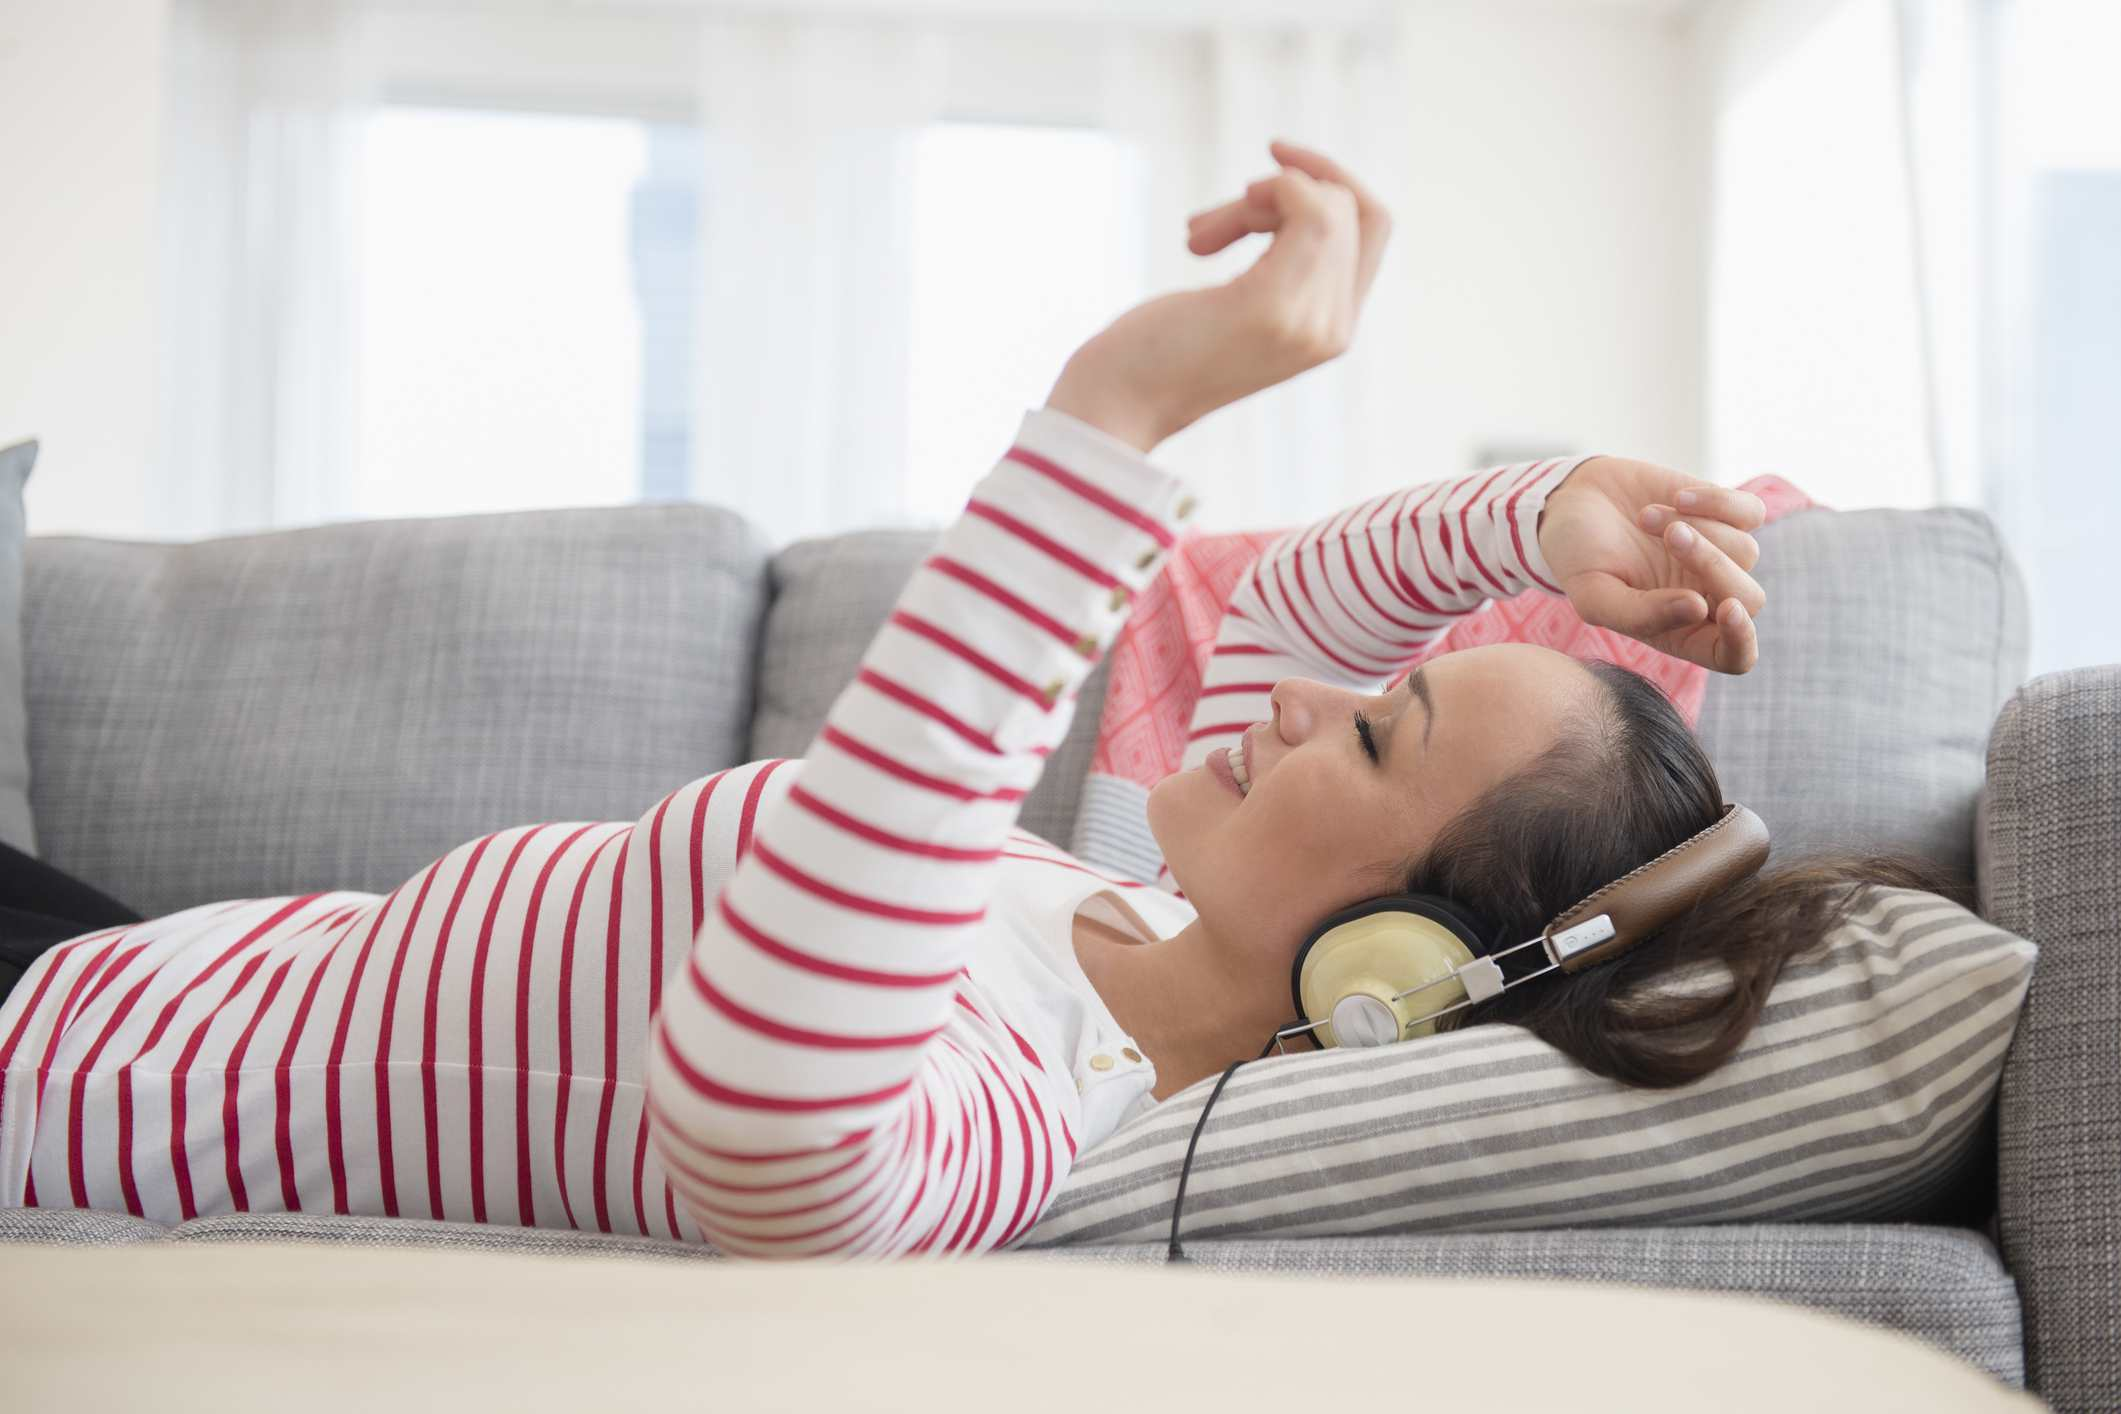 Woman lying on couch listens to headphones.